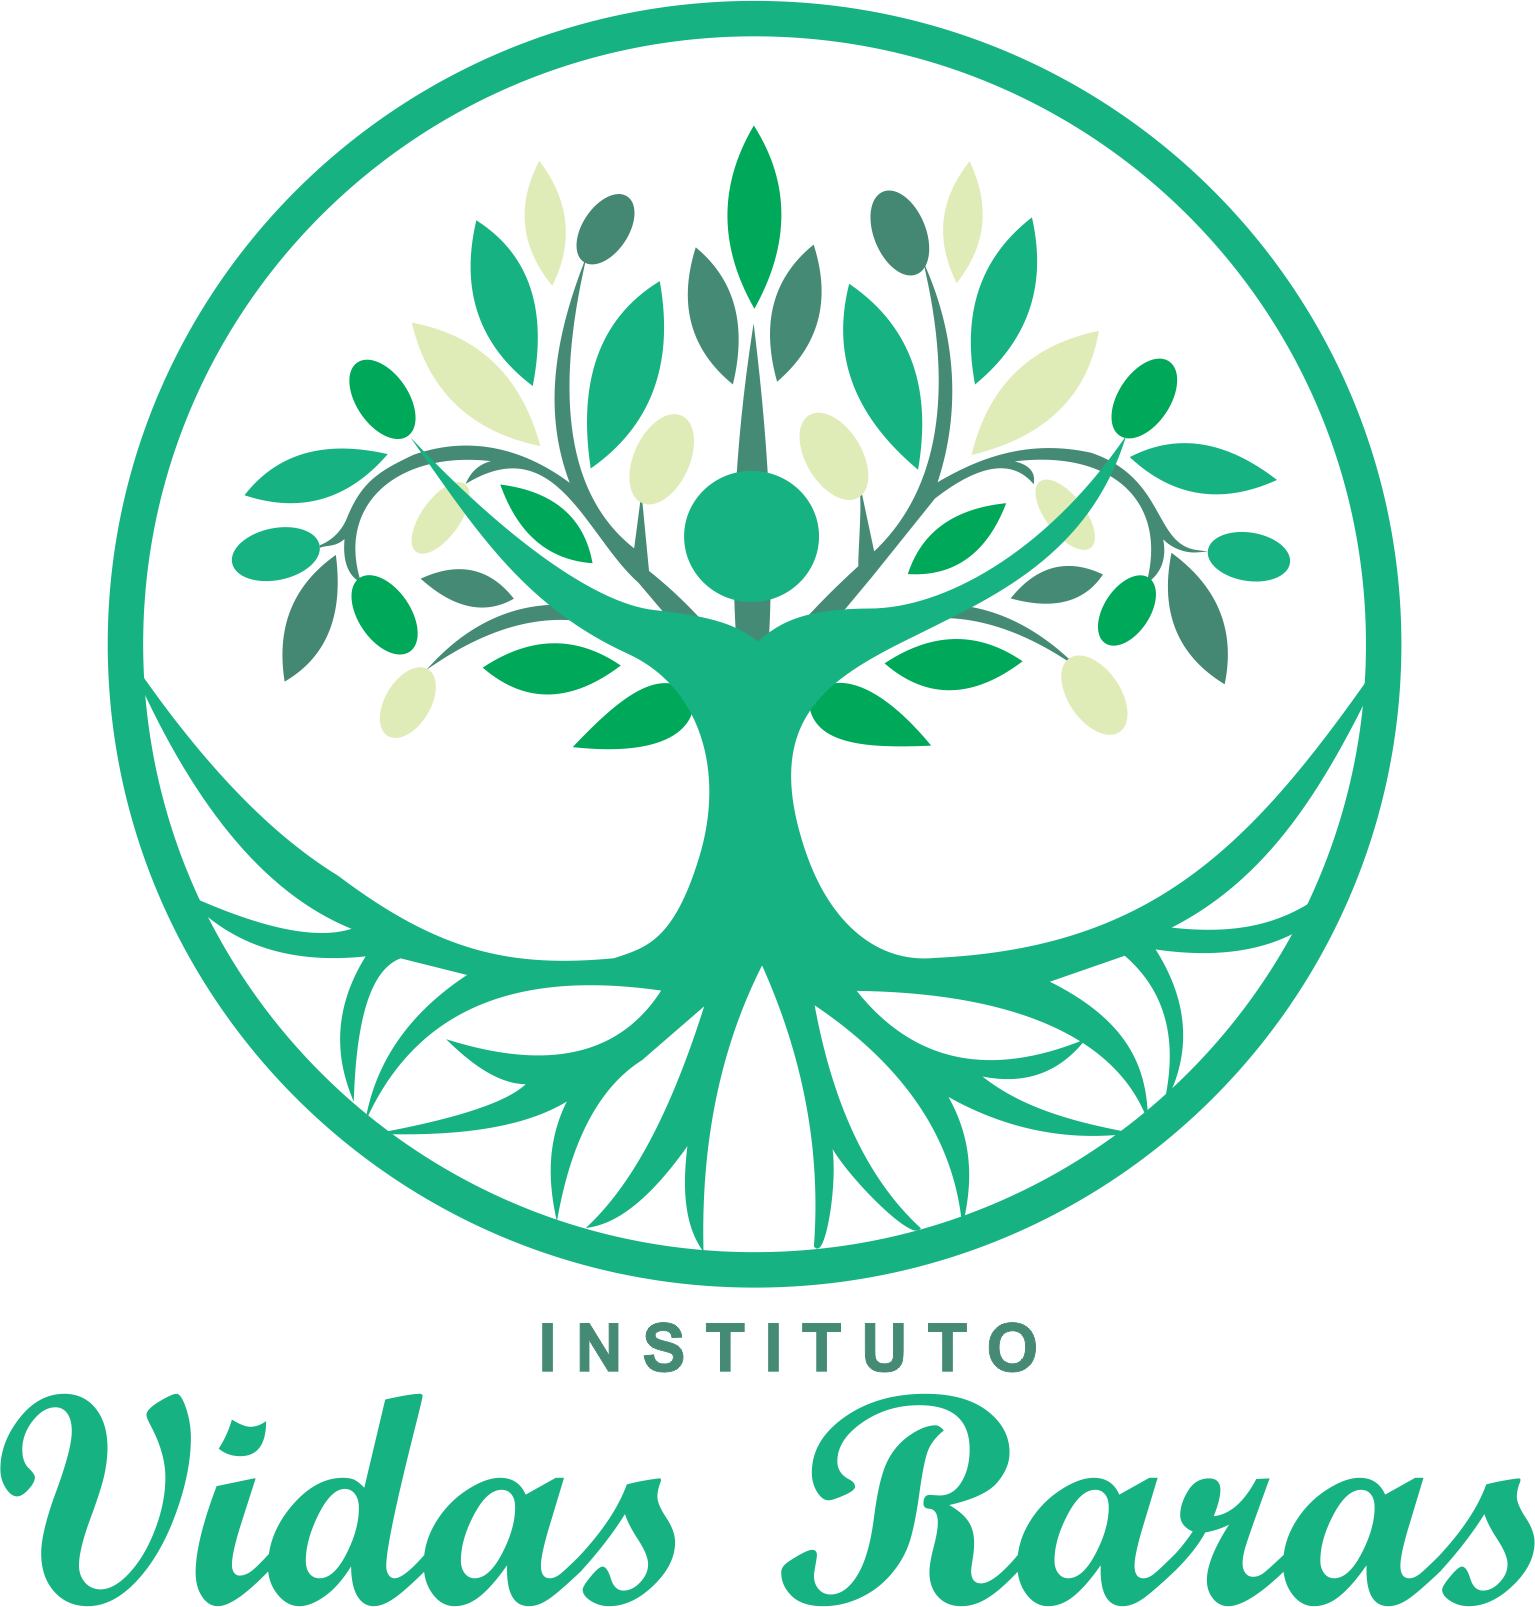 Instituto Vidas Raras